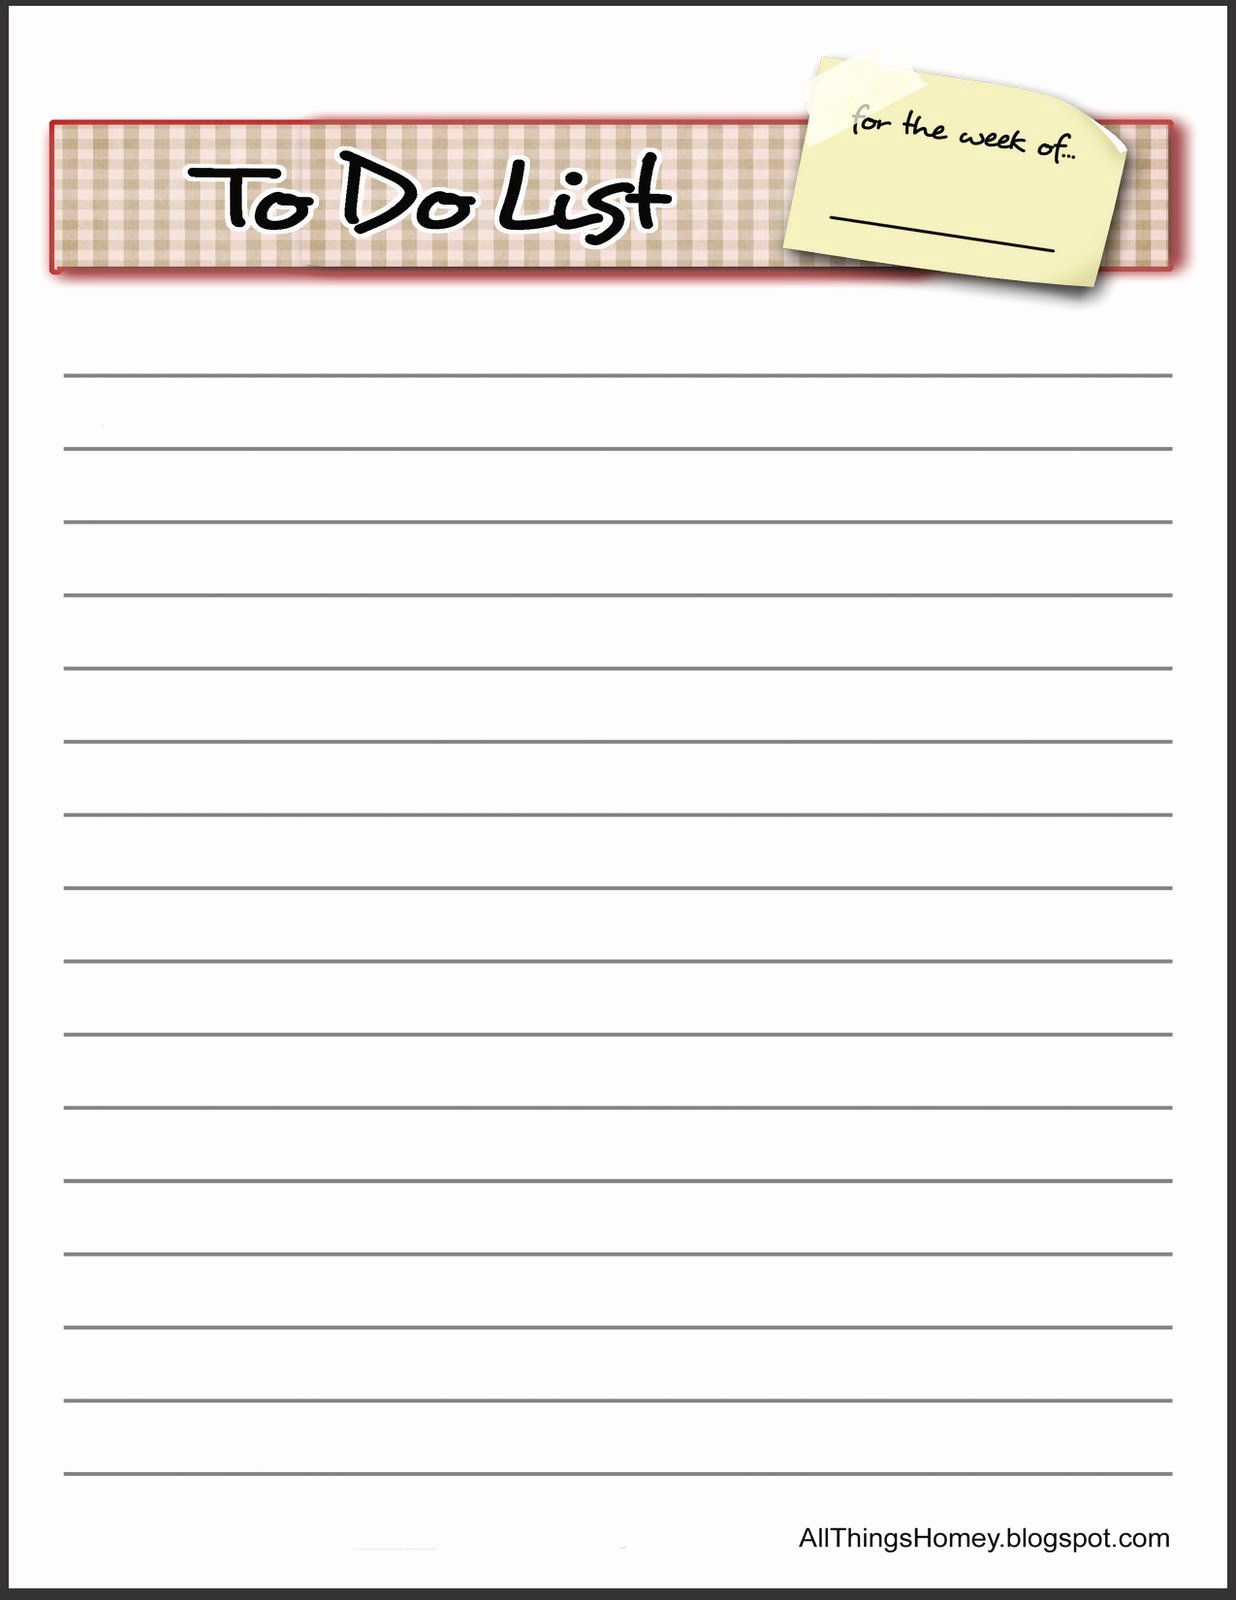 Things to Do List Template Luxury All Things Homey Free to Do List Revised